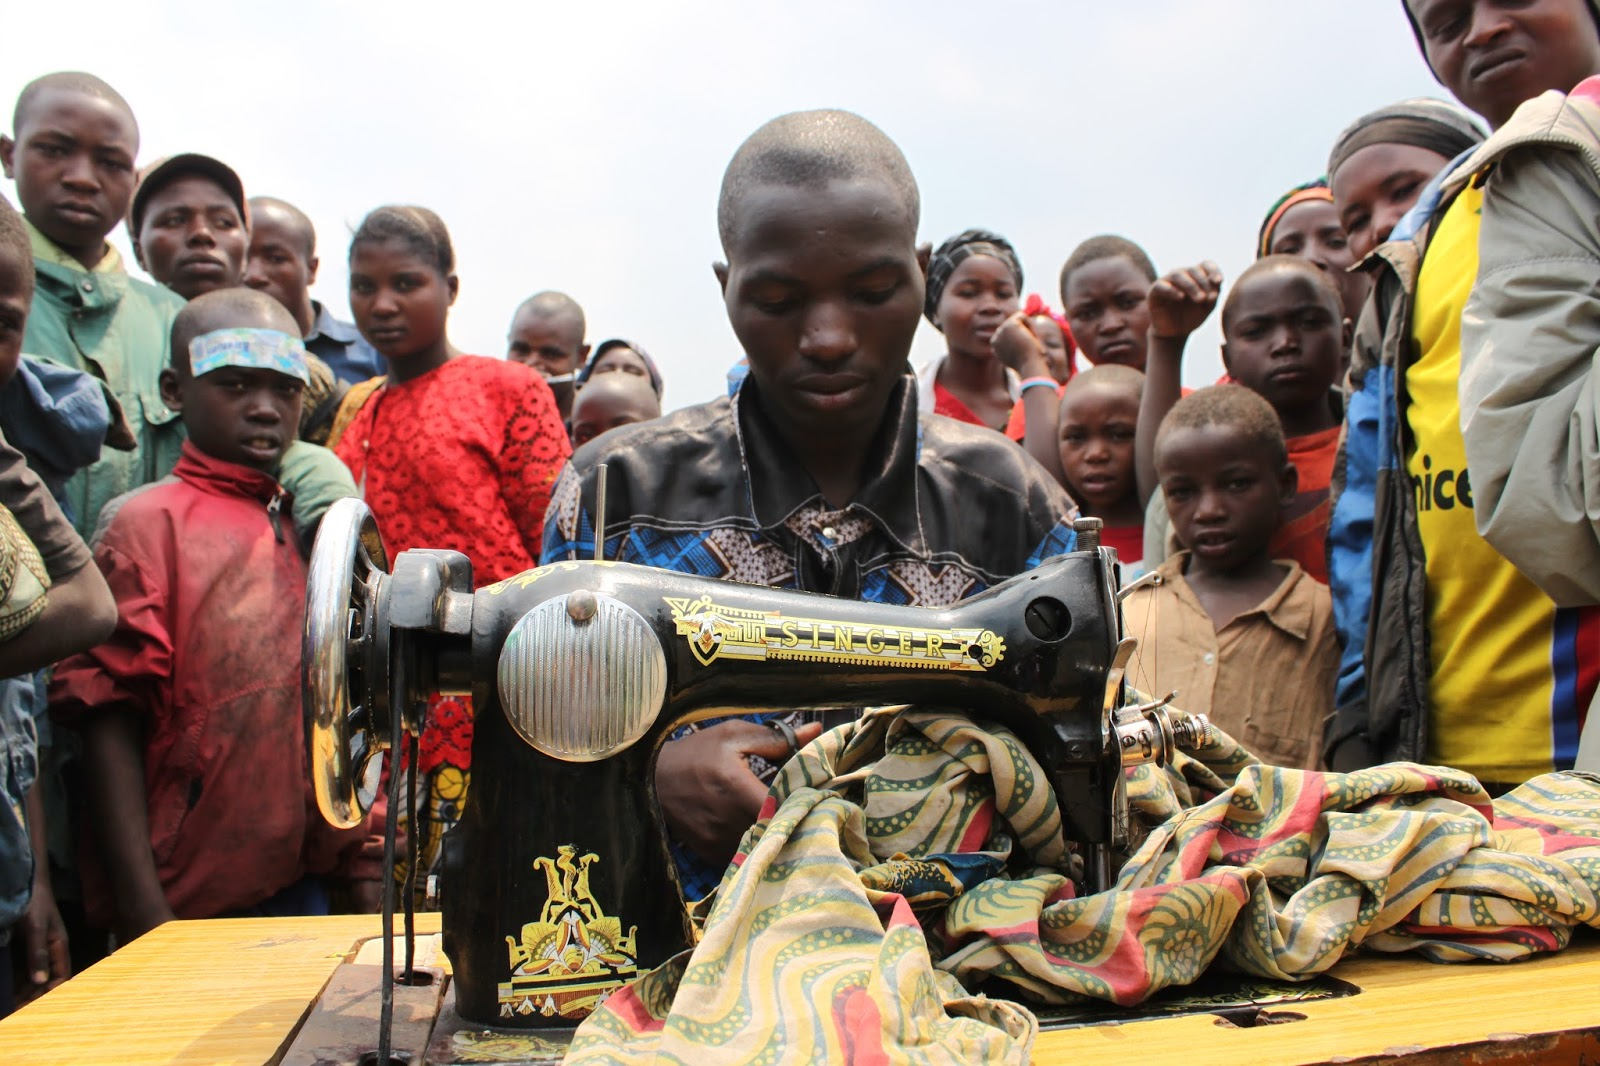 Oxfam on Sewing In The Democratic Republic of the Congo